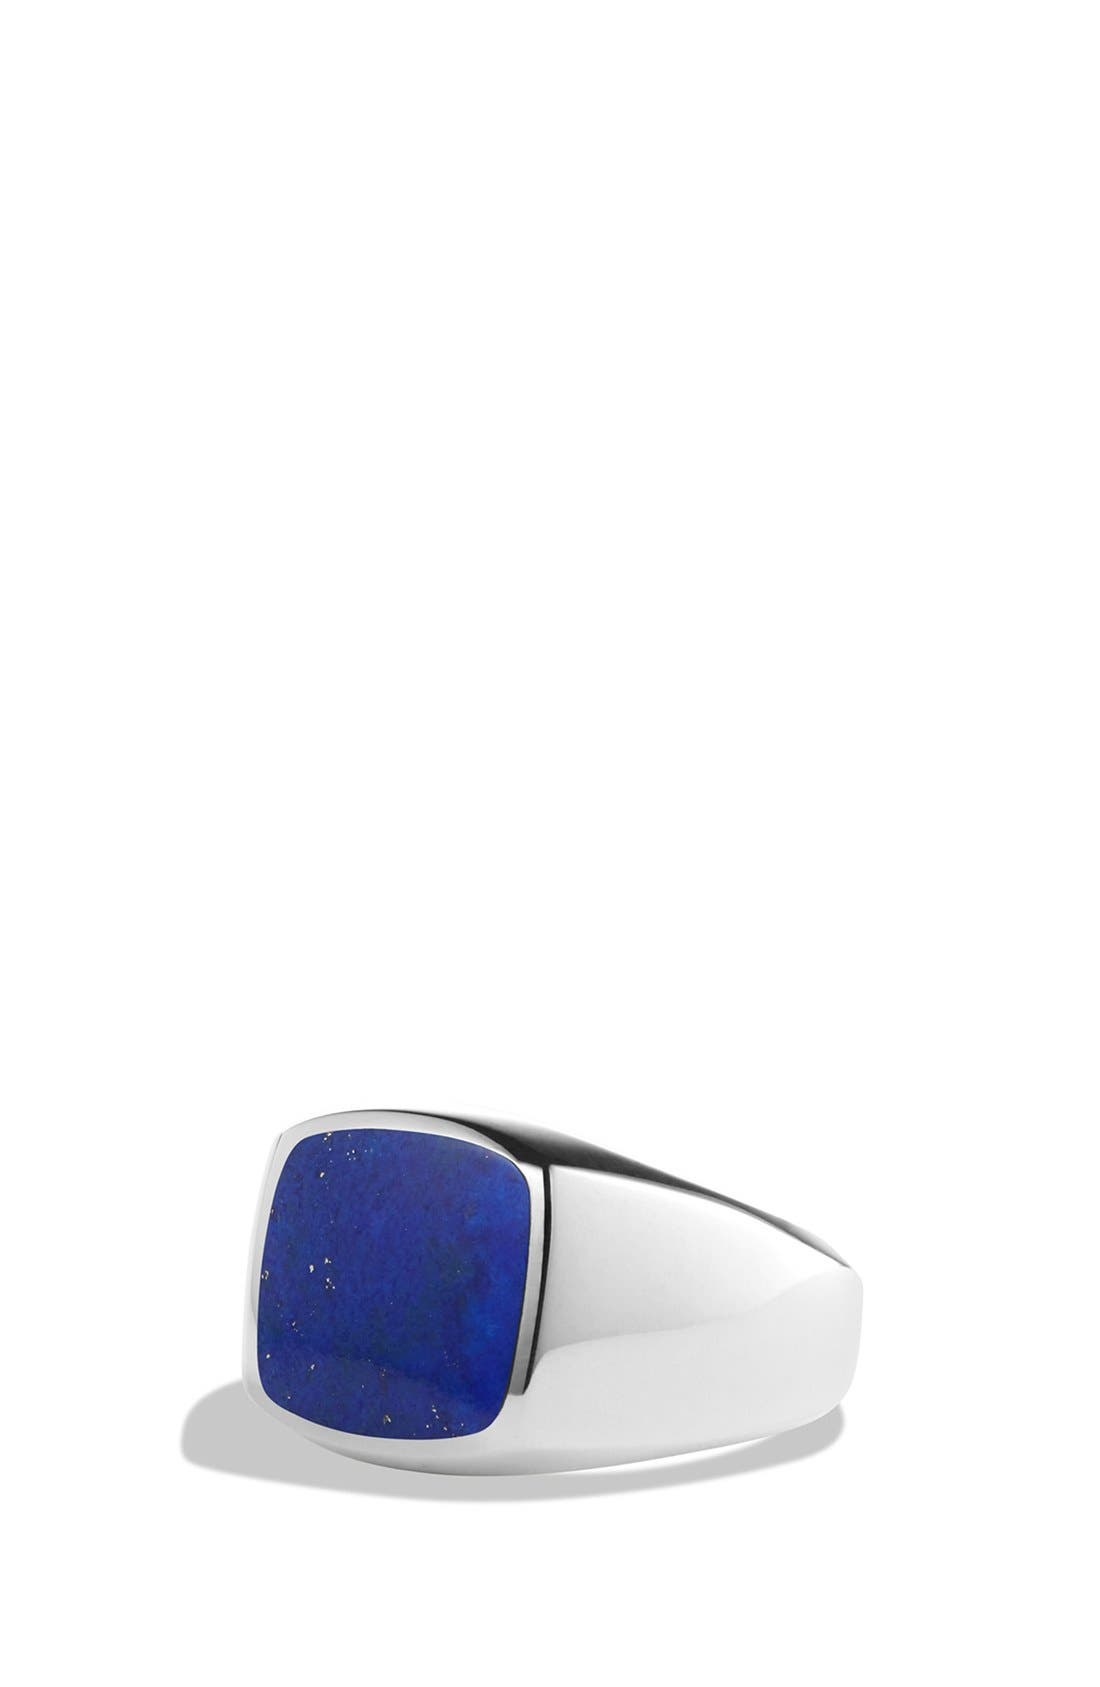 David Yurman 'Exotic Stone' Signet Ring in Silver